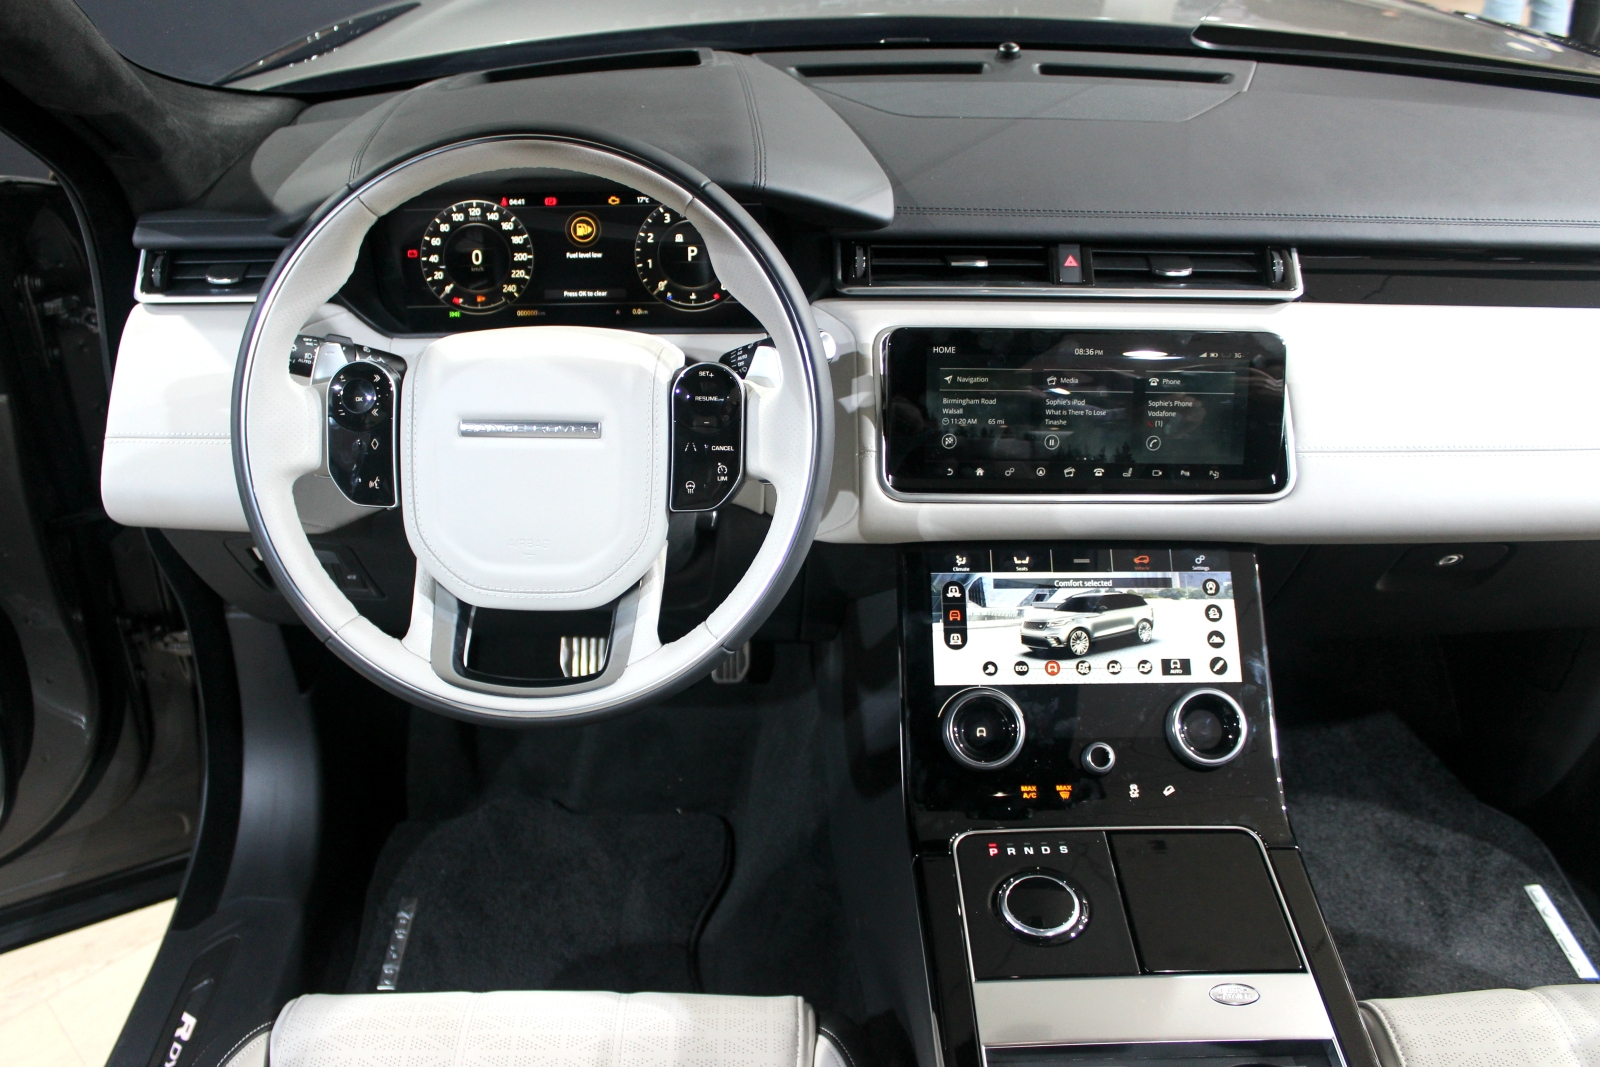 2017 range rover velar interior pictures to pin on. Black Bedroom Furniture Sets. Home Design Ideas